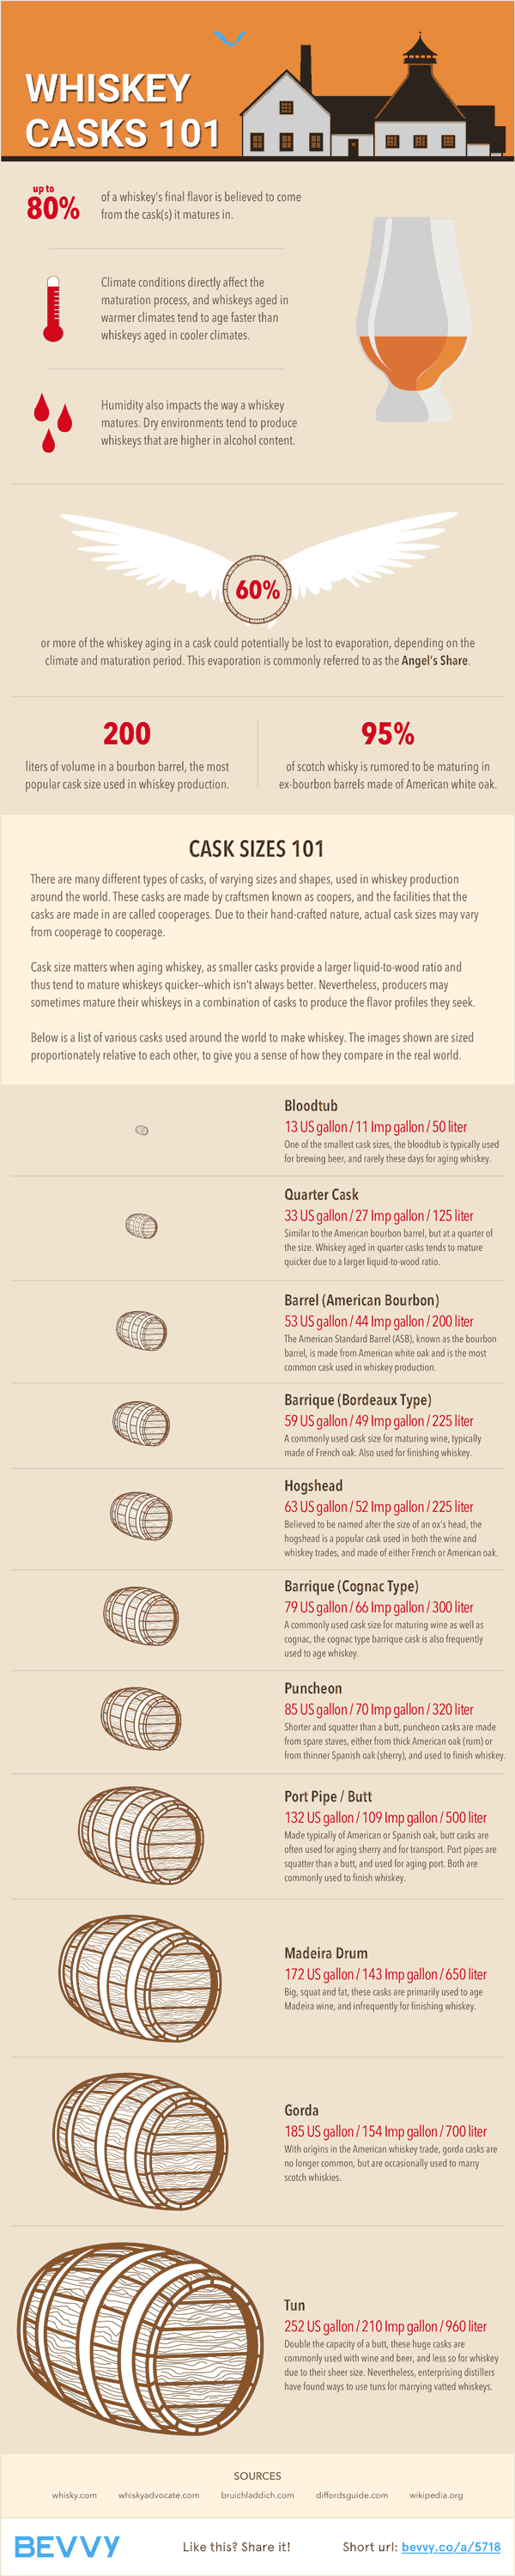 Whisky Casks 101 | Bevvy